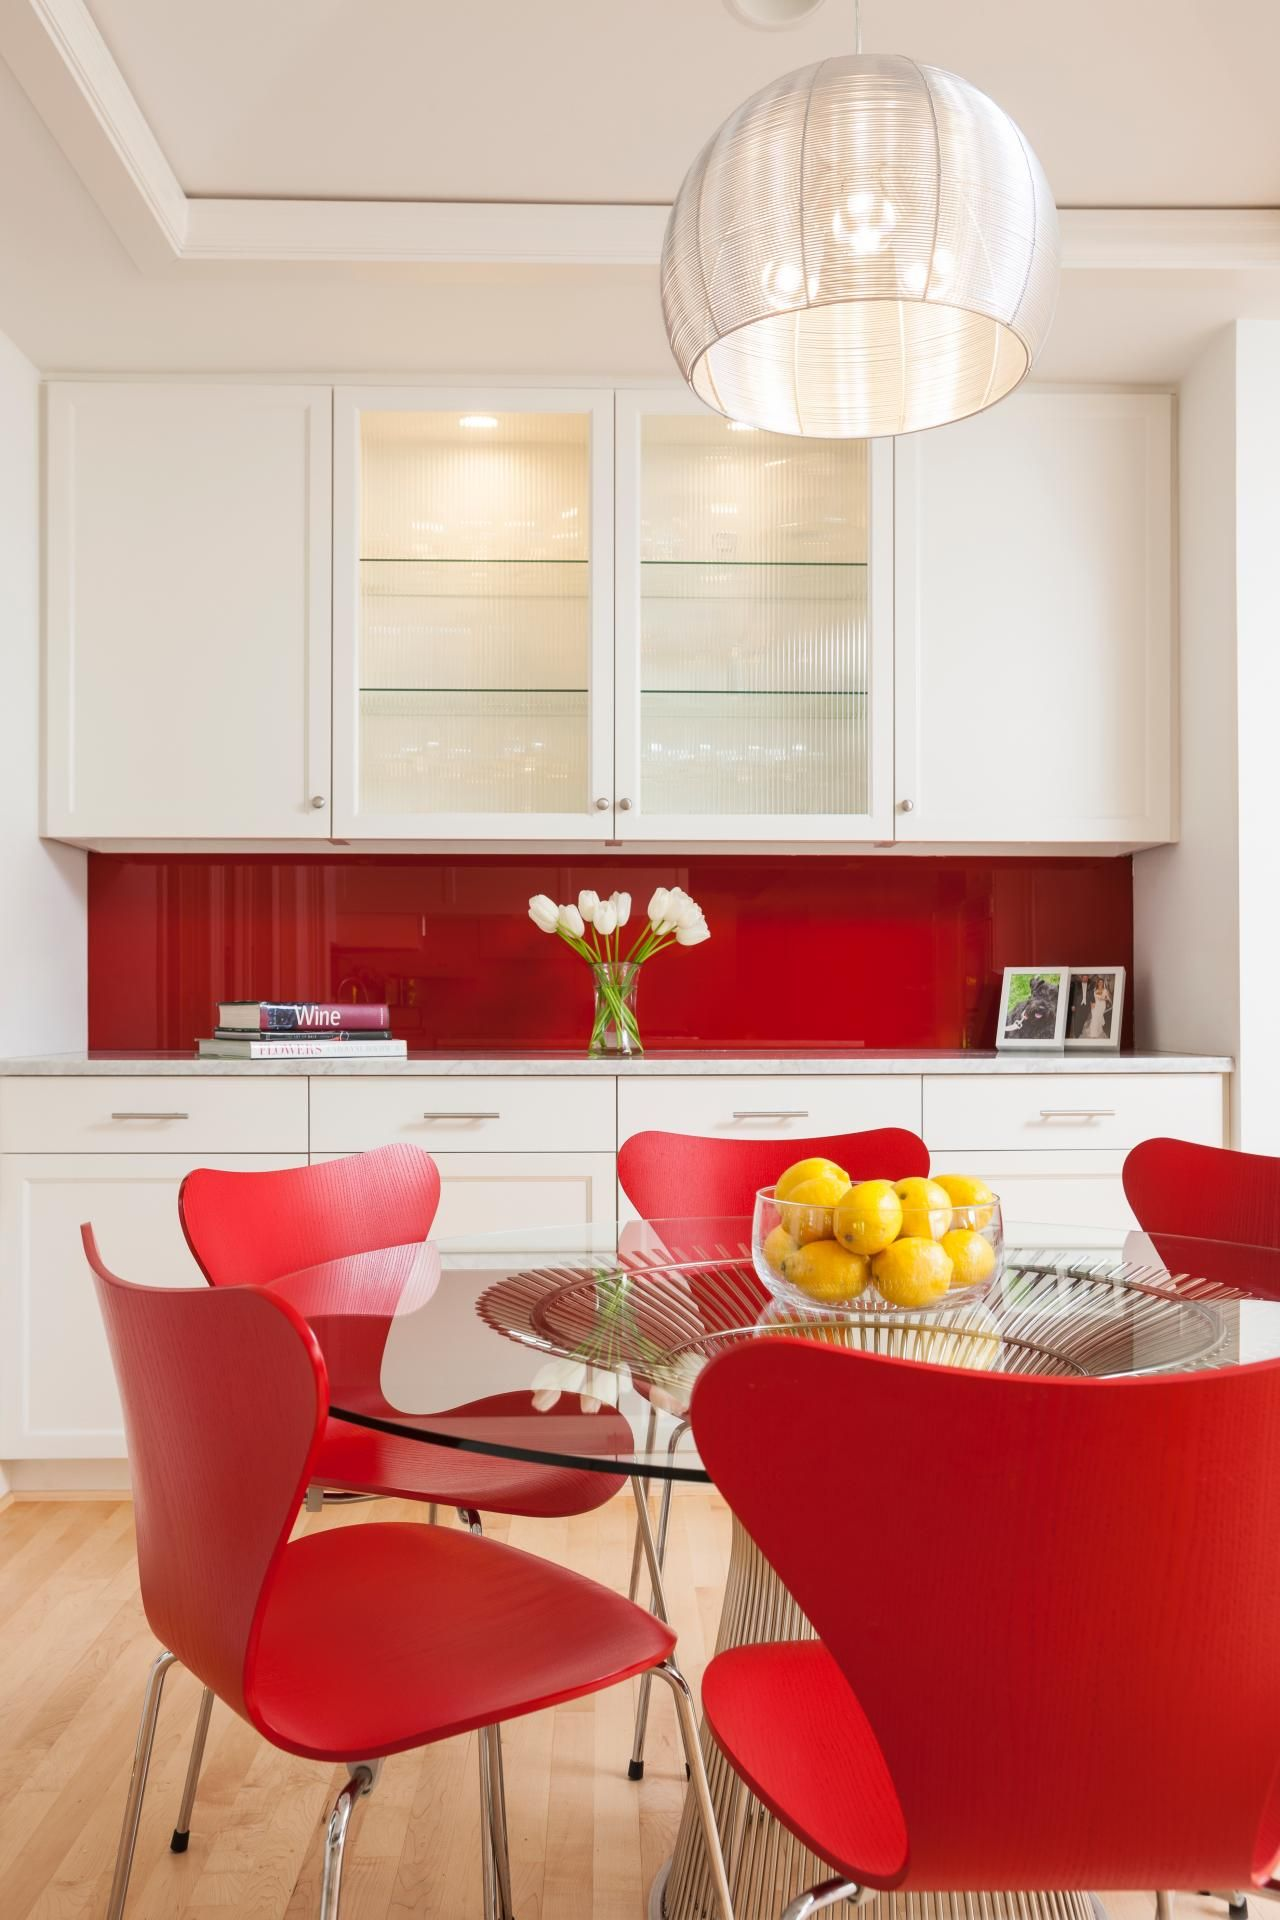 A Bright Cherry Red Backsplash And Matching Chairs Adds A Pop Of